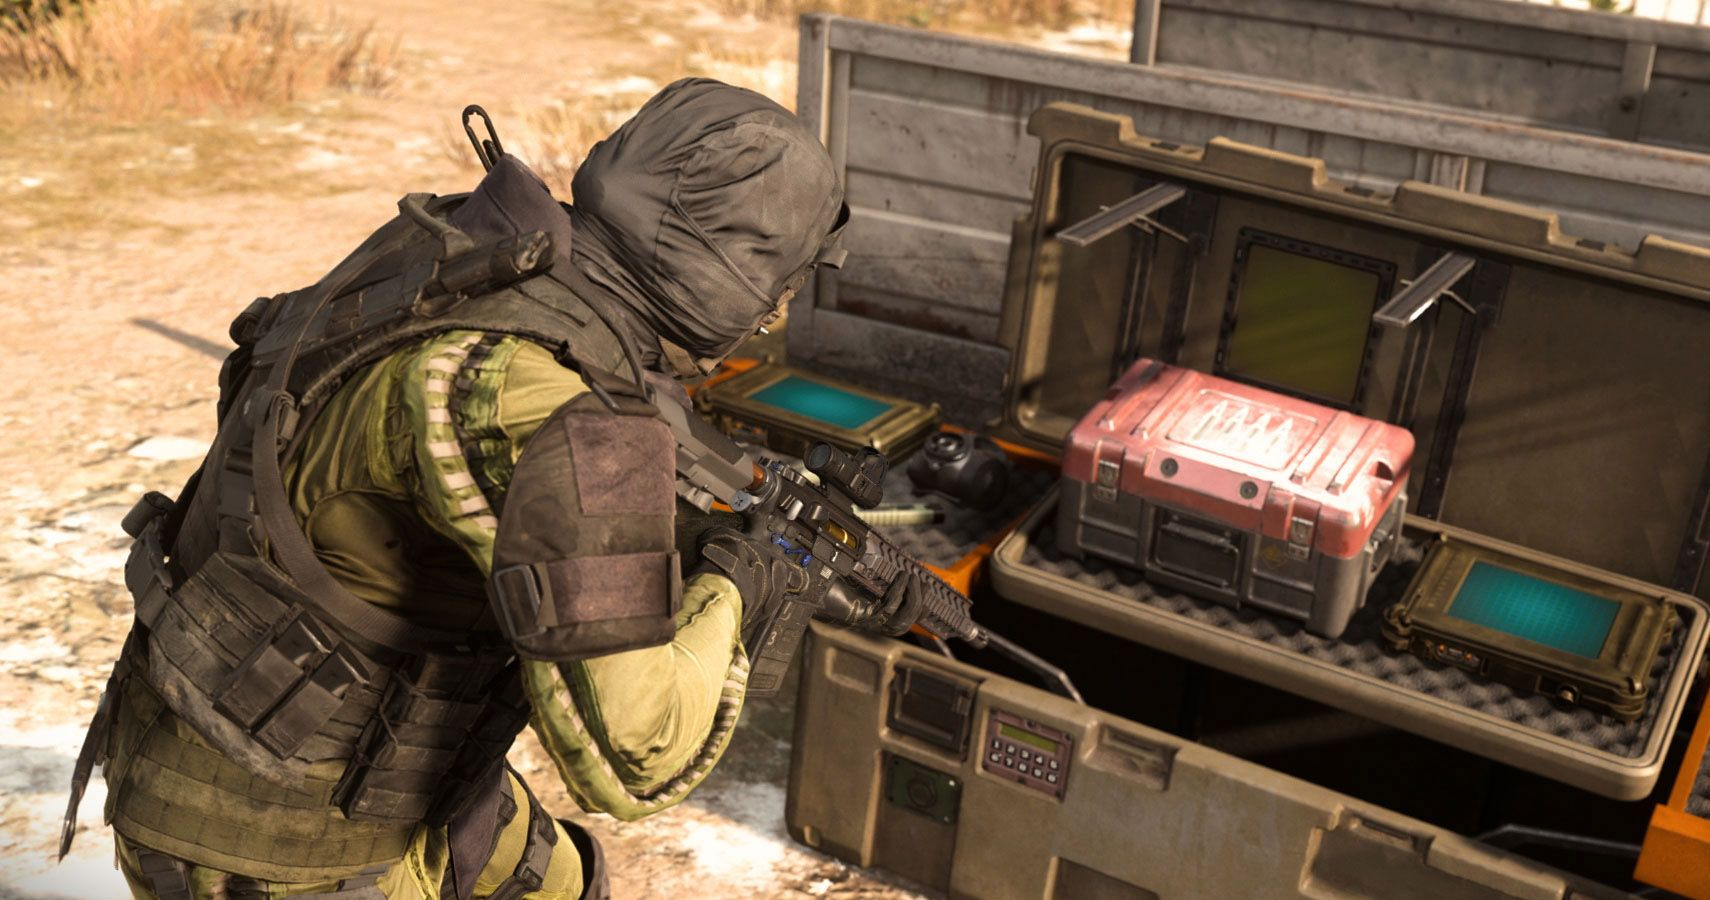 A soldier crouches next to an open supply crate with a red box and two devices with screens